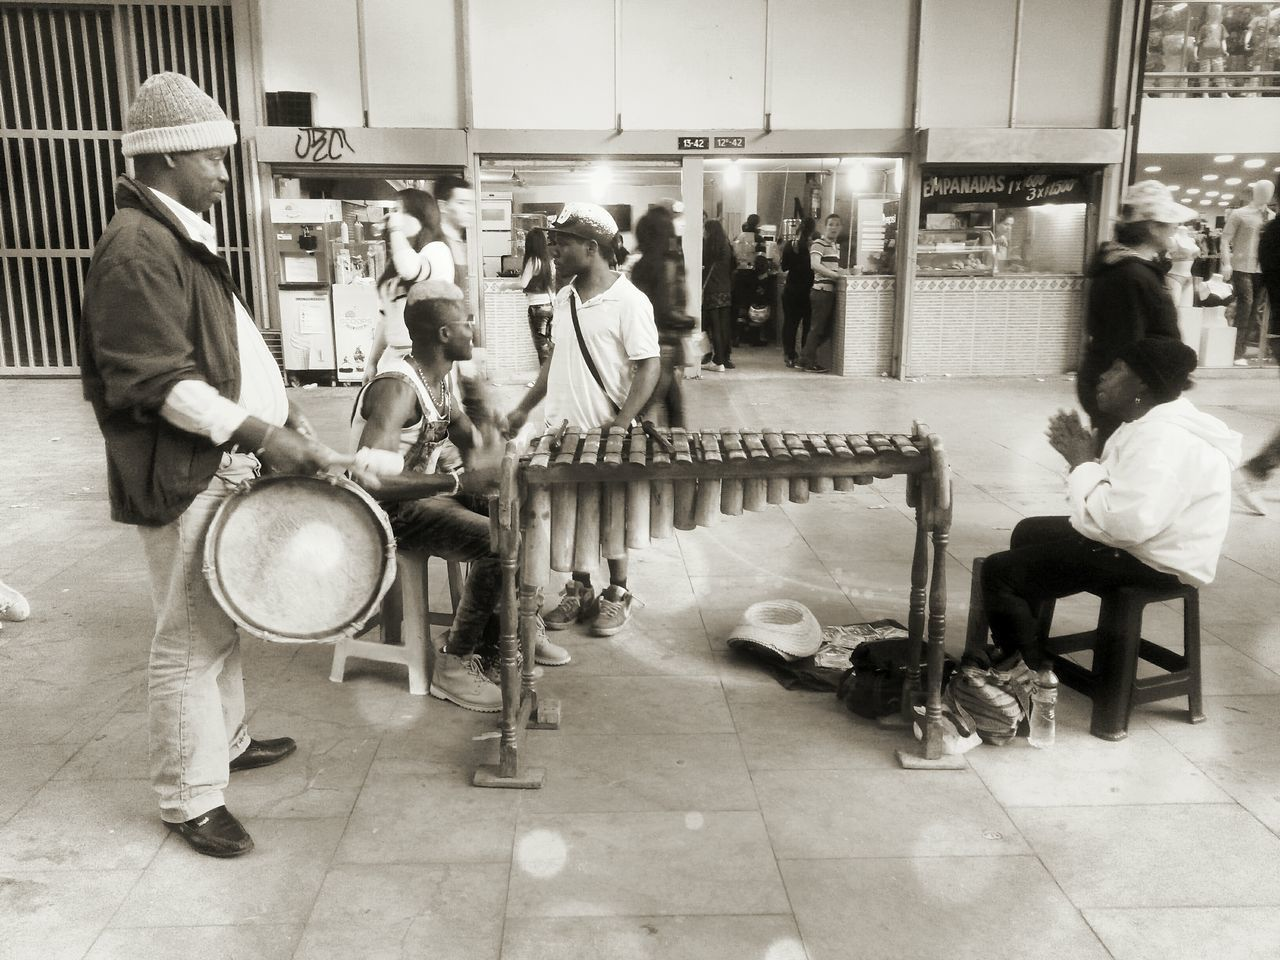 TakeoverMusic Streetart Streetmusic Colombianpeople Folclorcolombia Raíces Lovephotography  Blakandwhite